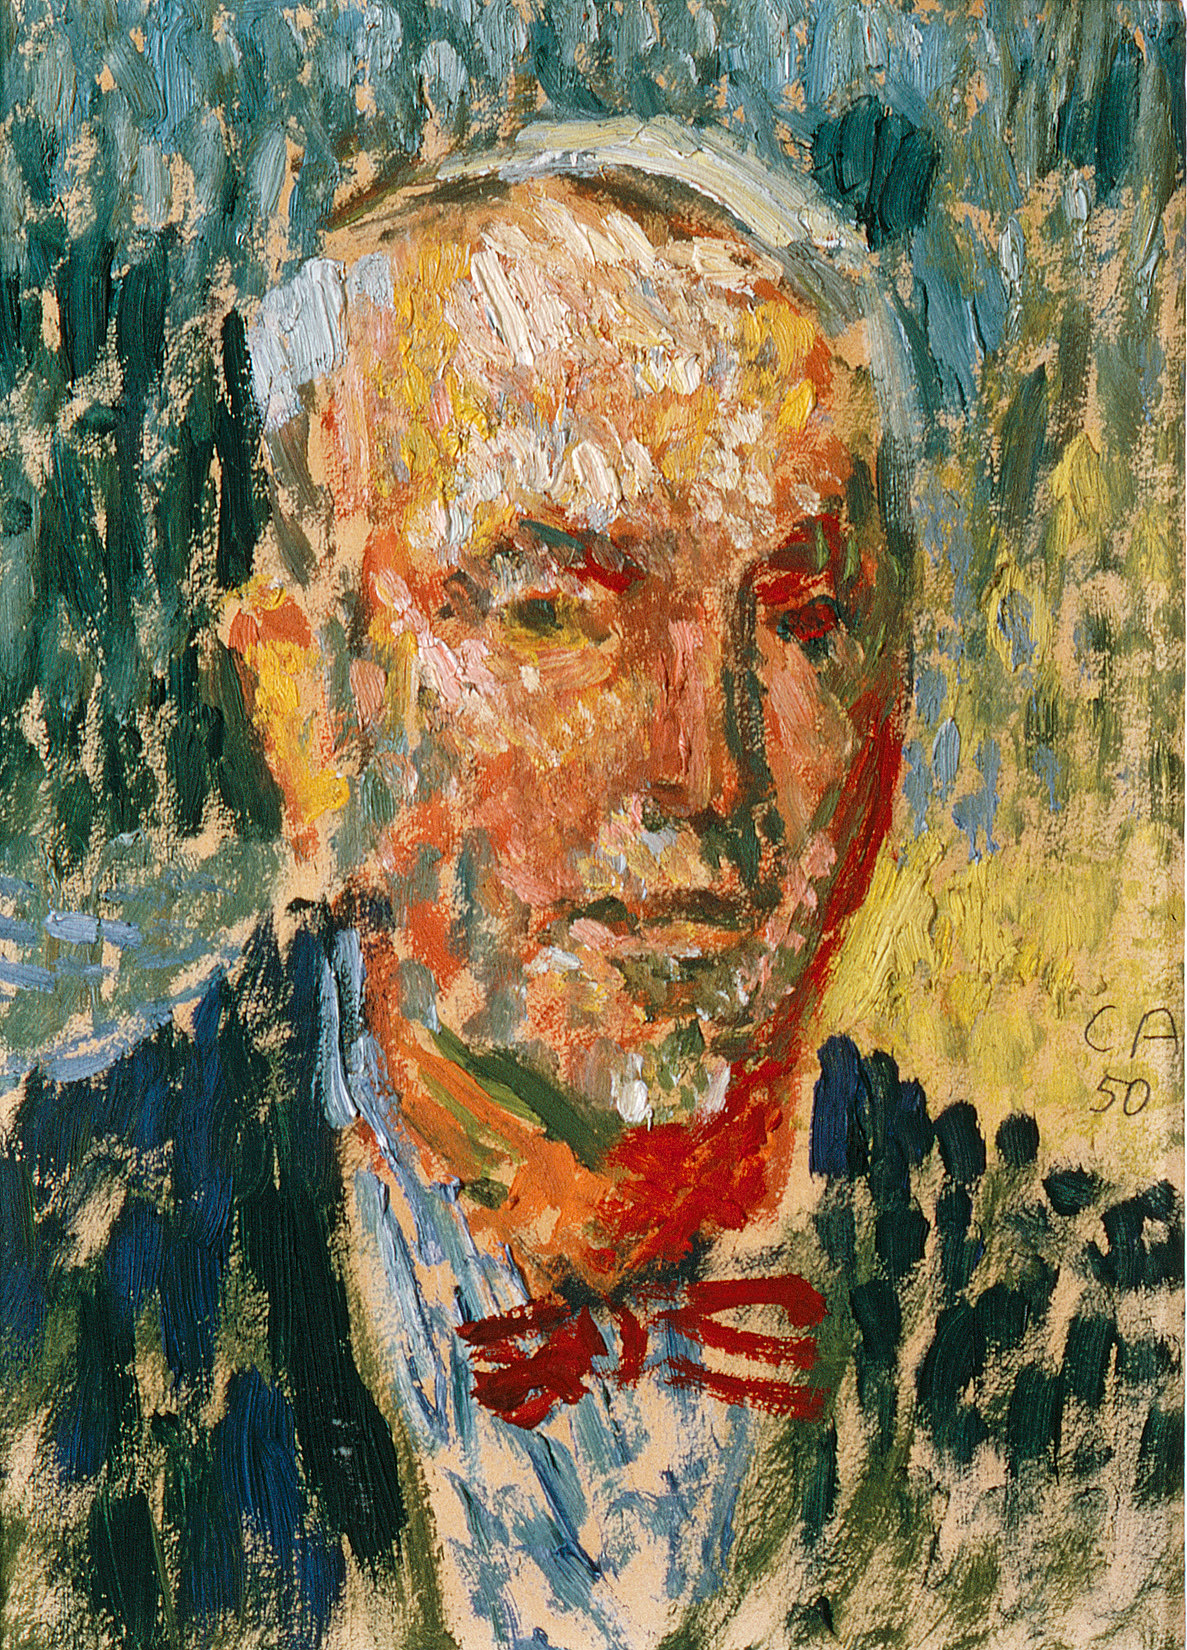 Cuno Amiet, Self-portrait, 1950